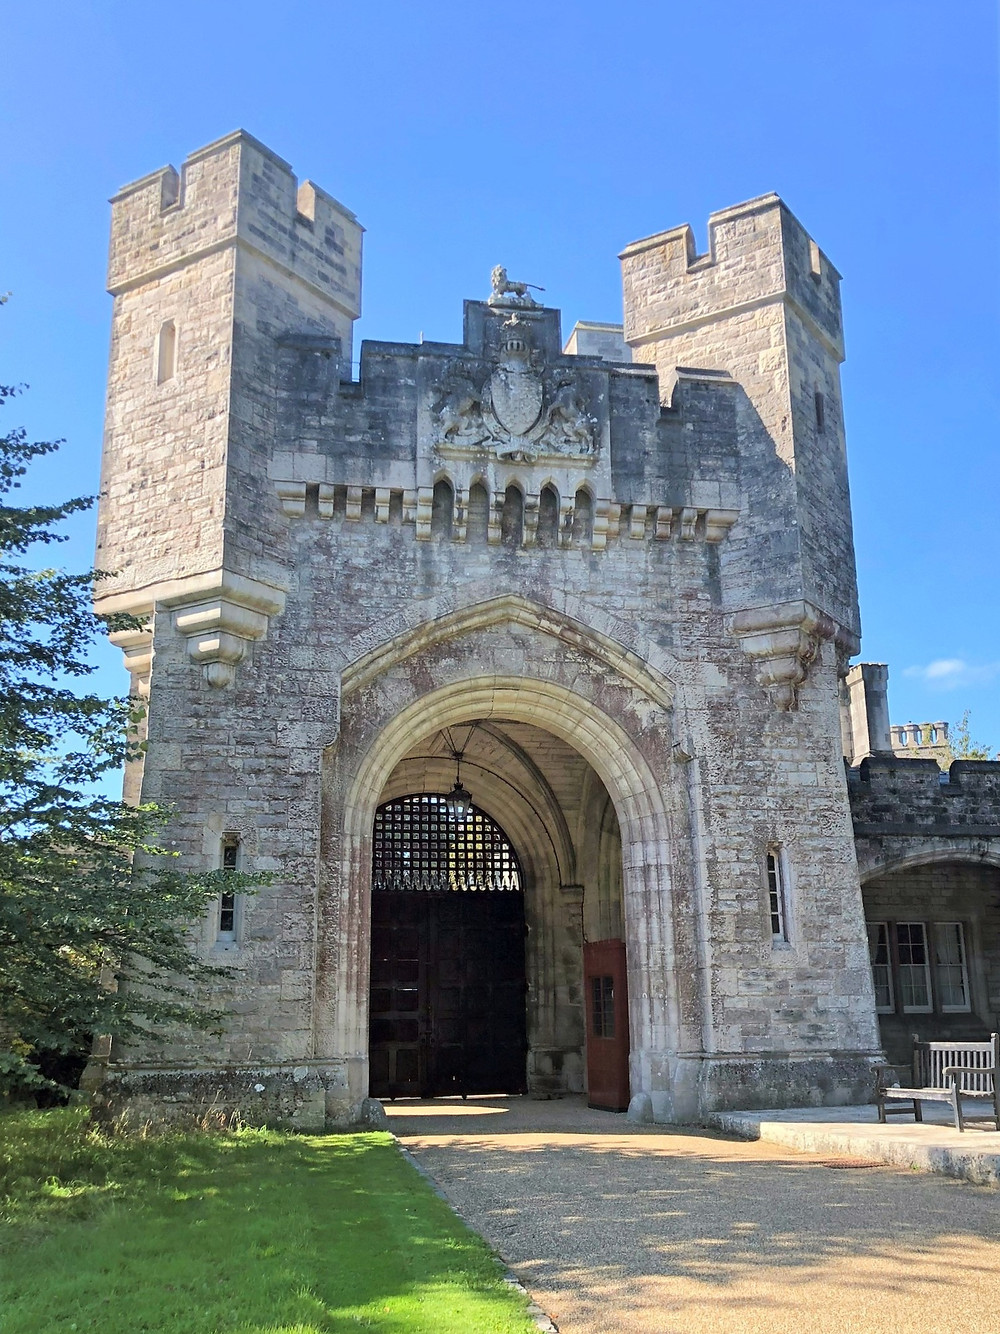 A large stone gate leads to beautiful gardens and the Fitzalan Chapel on Arundel Castle grounds